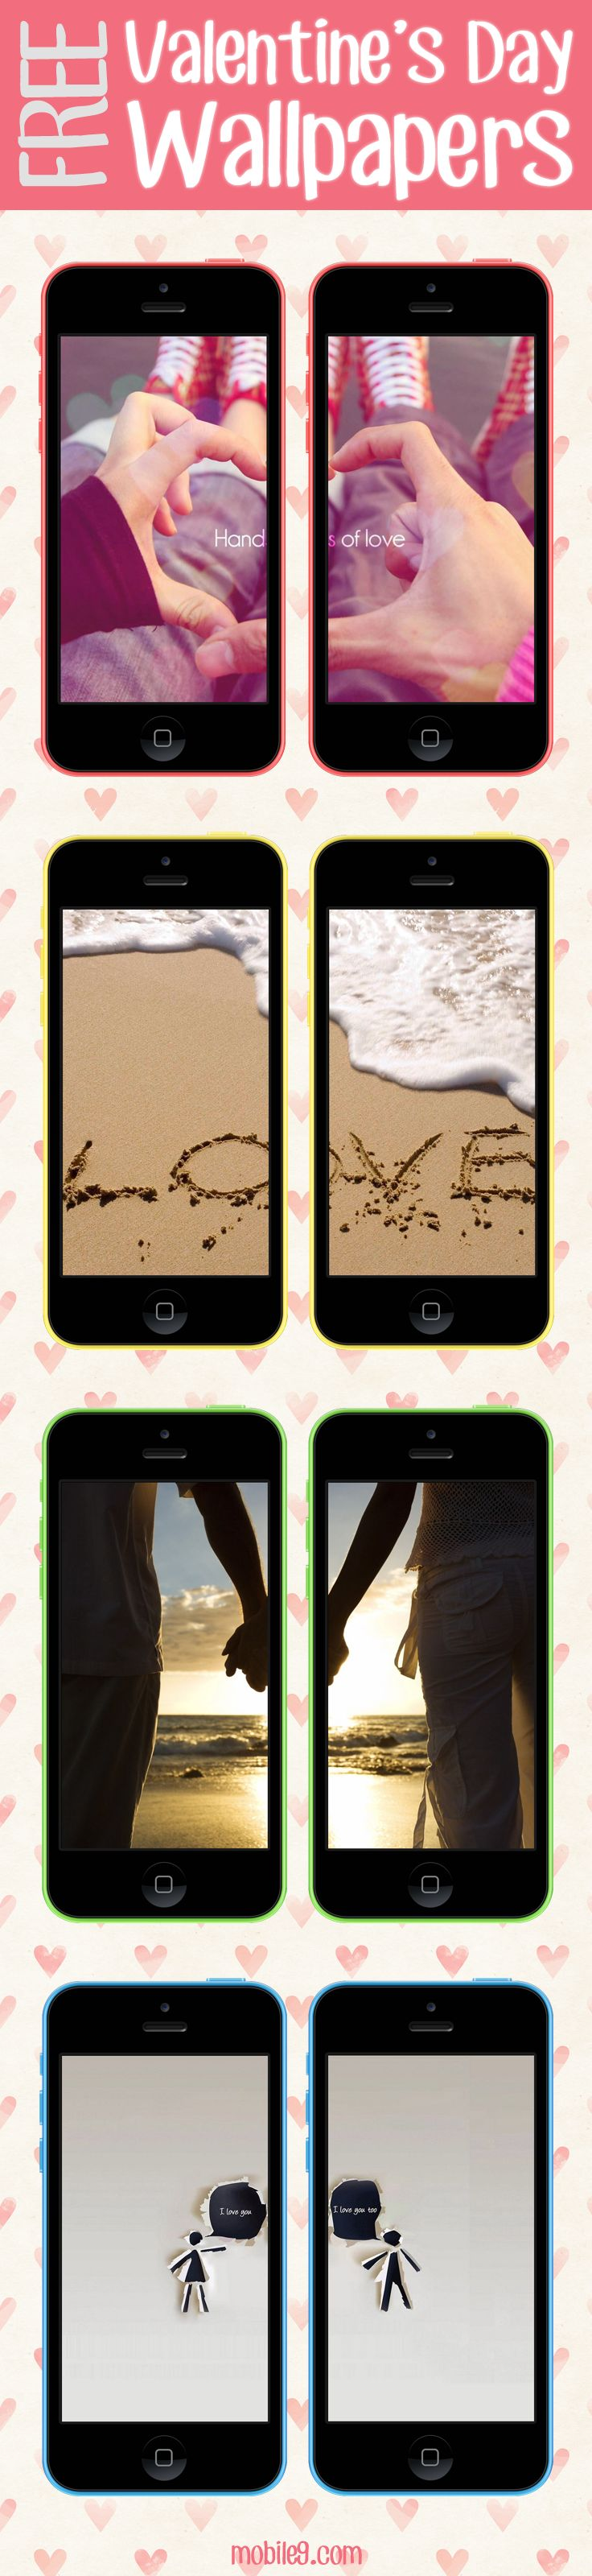 Round galaxy iphone 6 6 plus and iphone 5 4 wallpapers - In Love Couple Wallpapers Wallpaper For Iphone